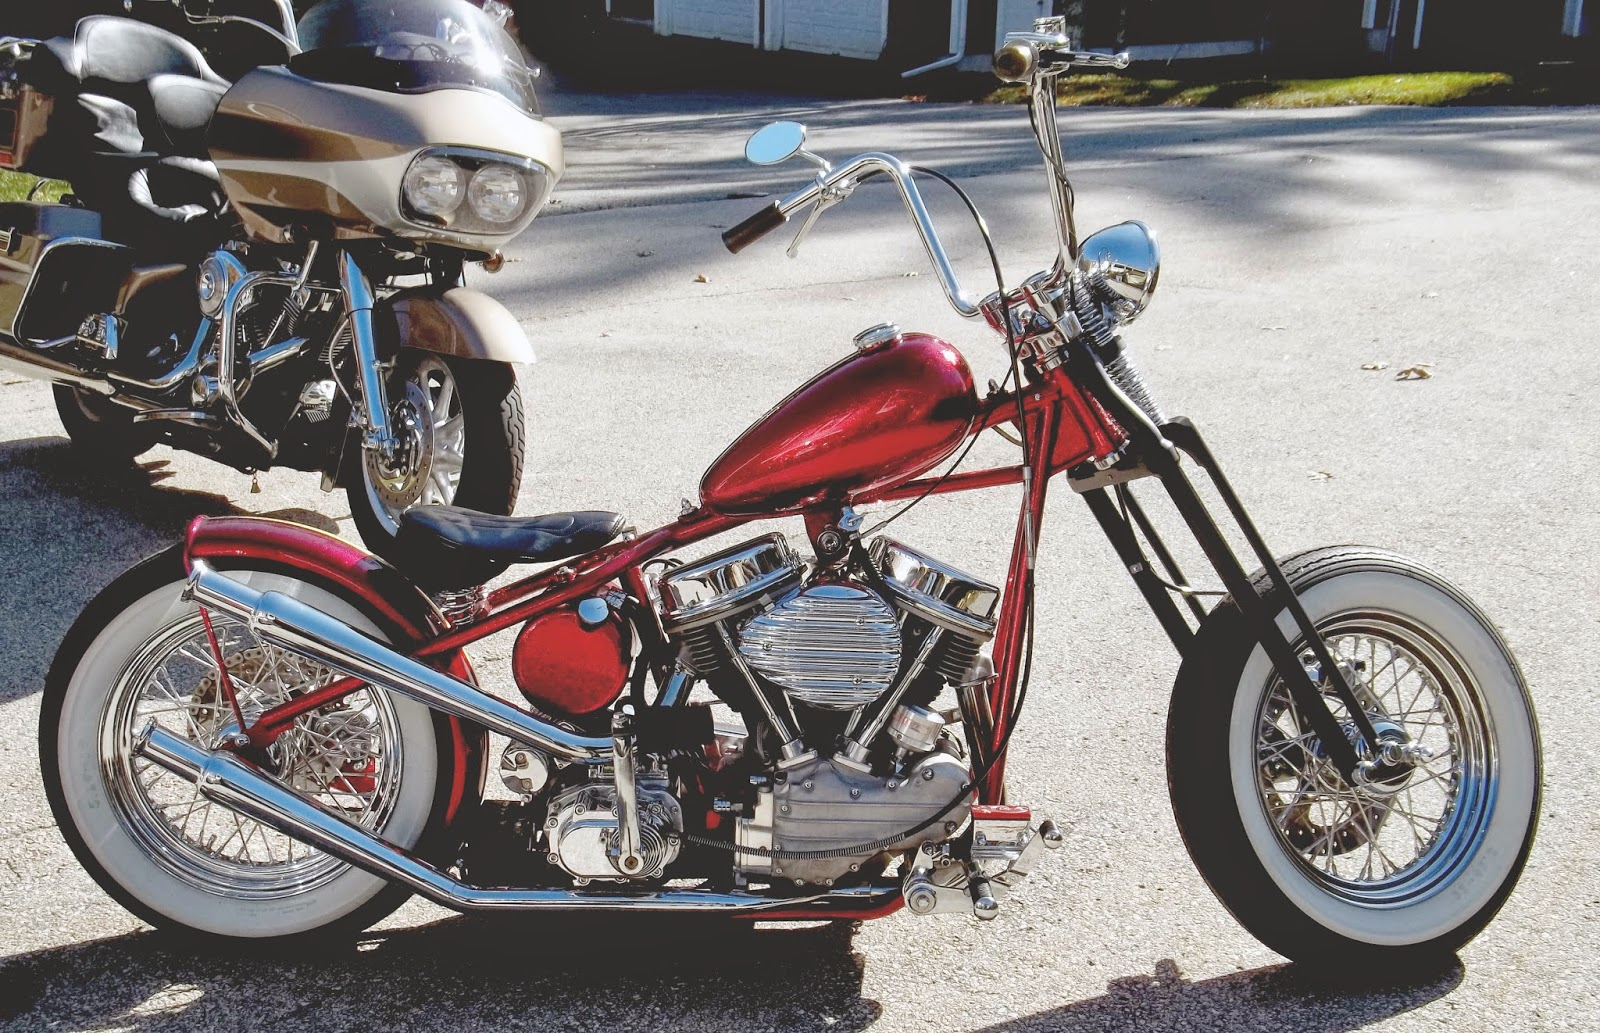 moto mucci for sale custom harley panhead bobber 1998 Sportster Harness Wires  Ironhead Wiring XS650 Simplified Wiring Harness Harley Bobber Rolling Chassis